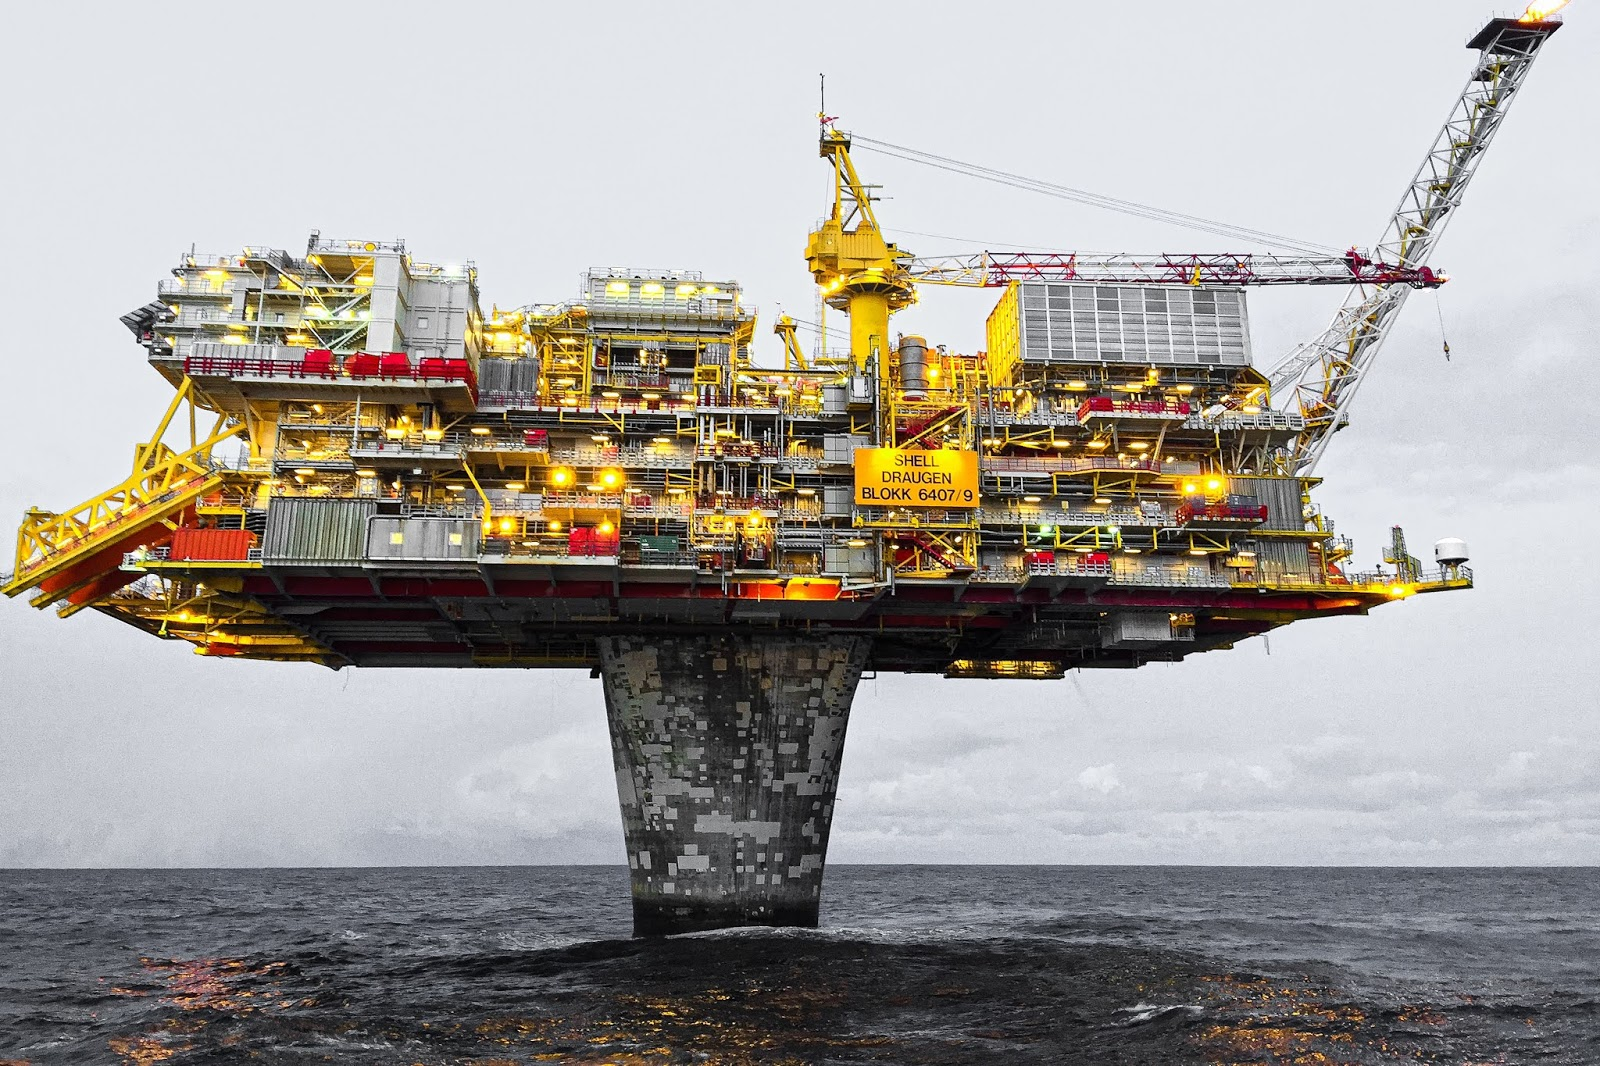 Oil And Gas - Quality, Safety And Inspection